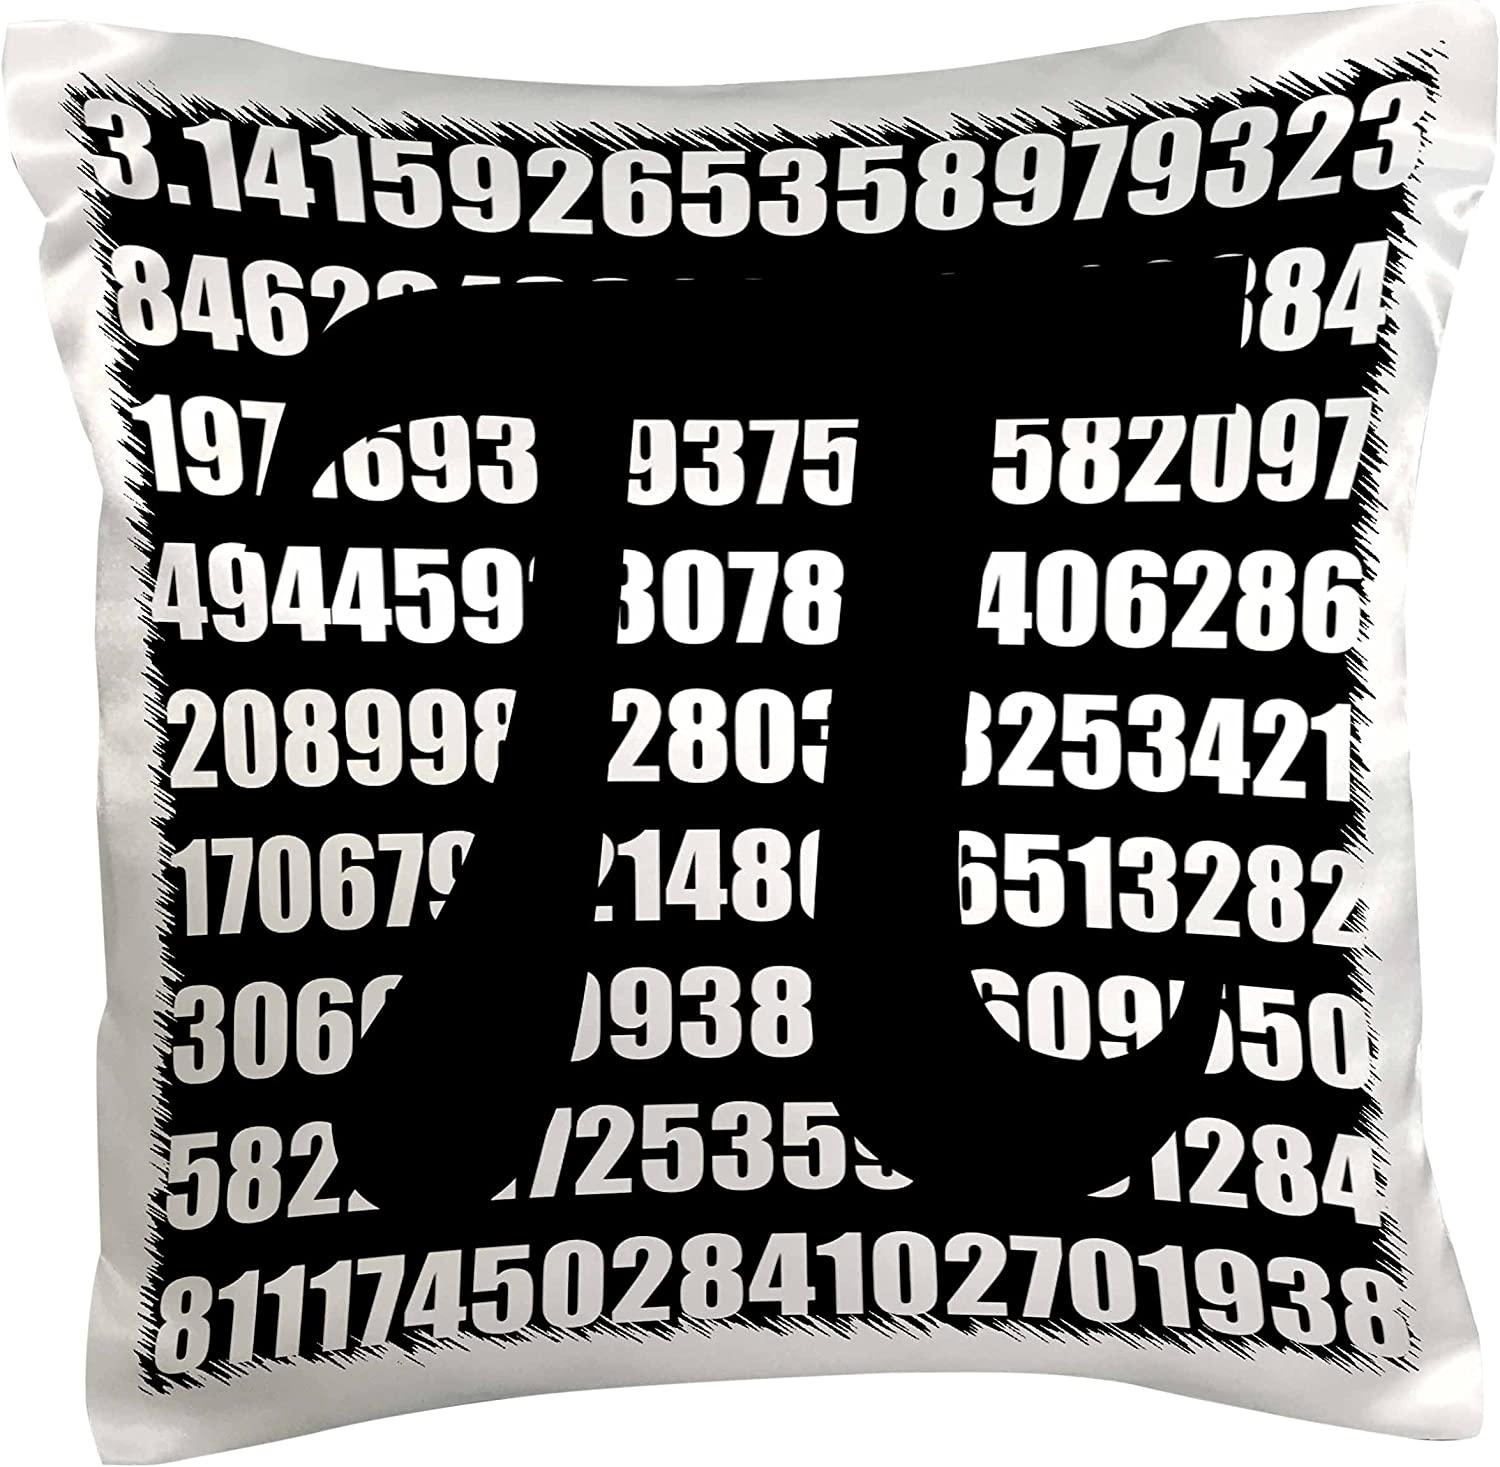 3dRose pc_164994_1 Pi Symbol on Number Math Mathematical Numeric Sign for Mathematicians Pillow Case, 16